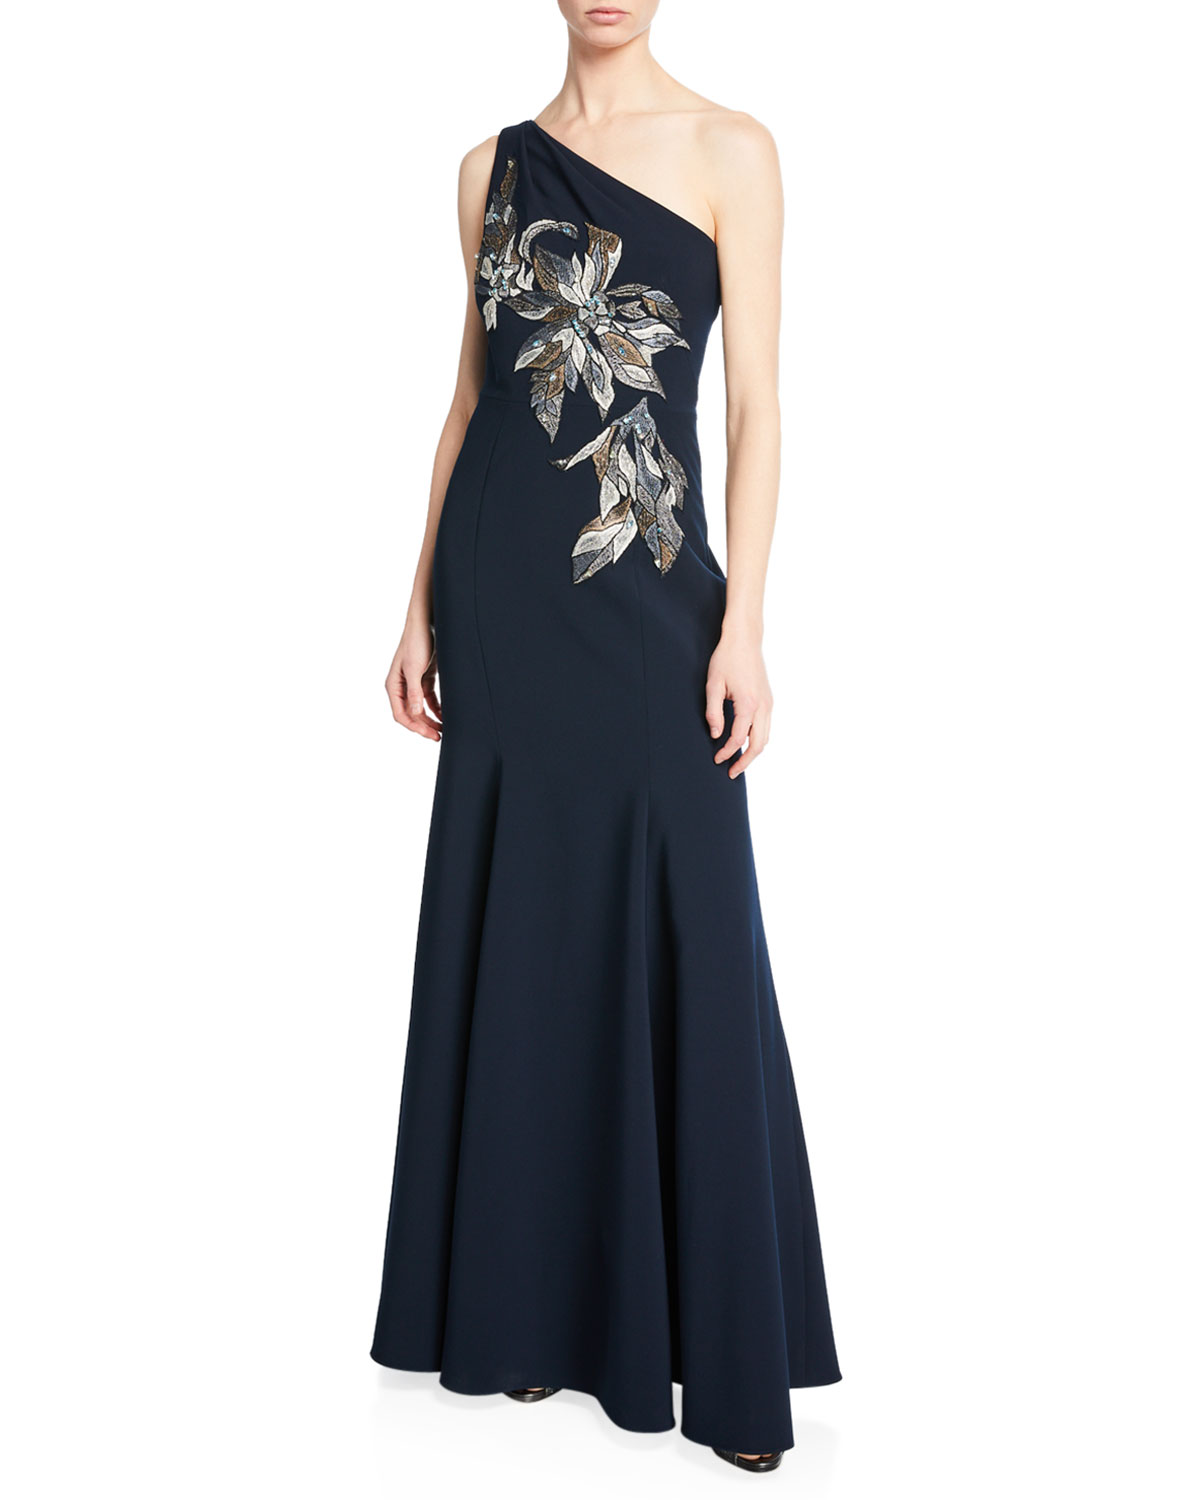 MARCHESA NOTTE One-Shoulder Mermaid Gown W/ Beaded Embroidered Appliques in Navy